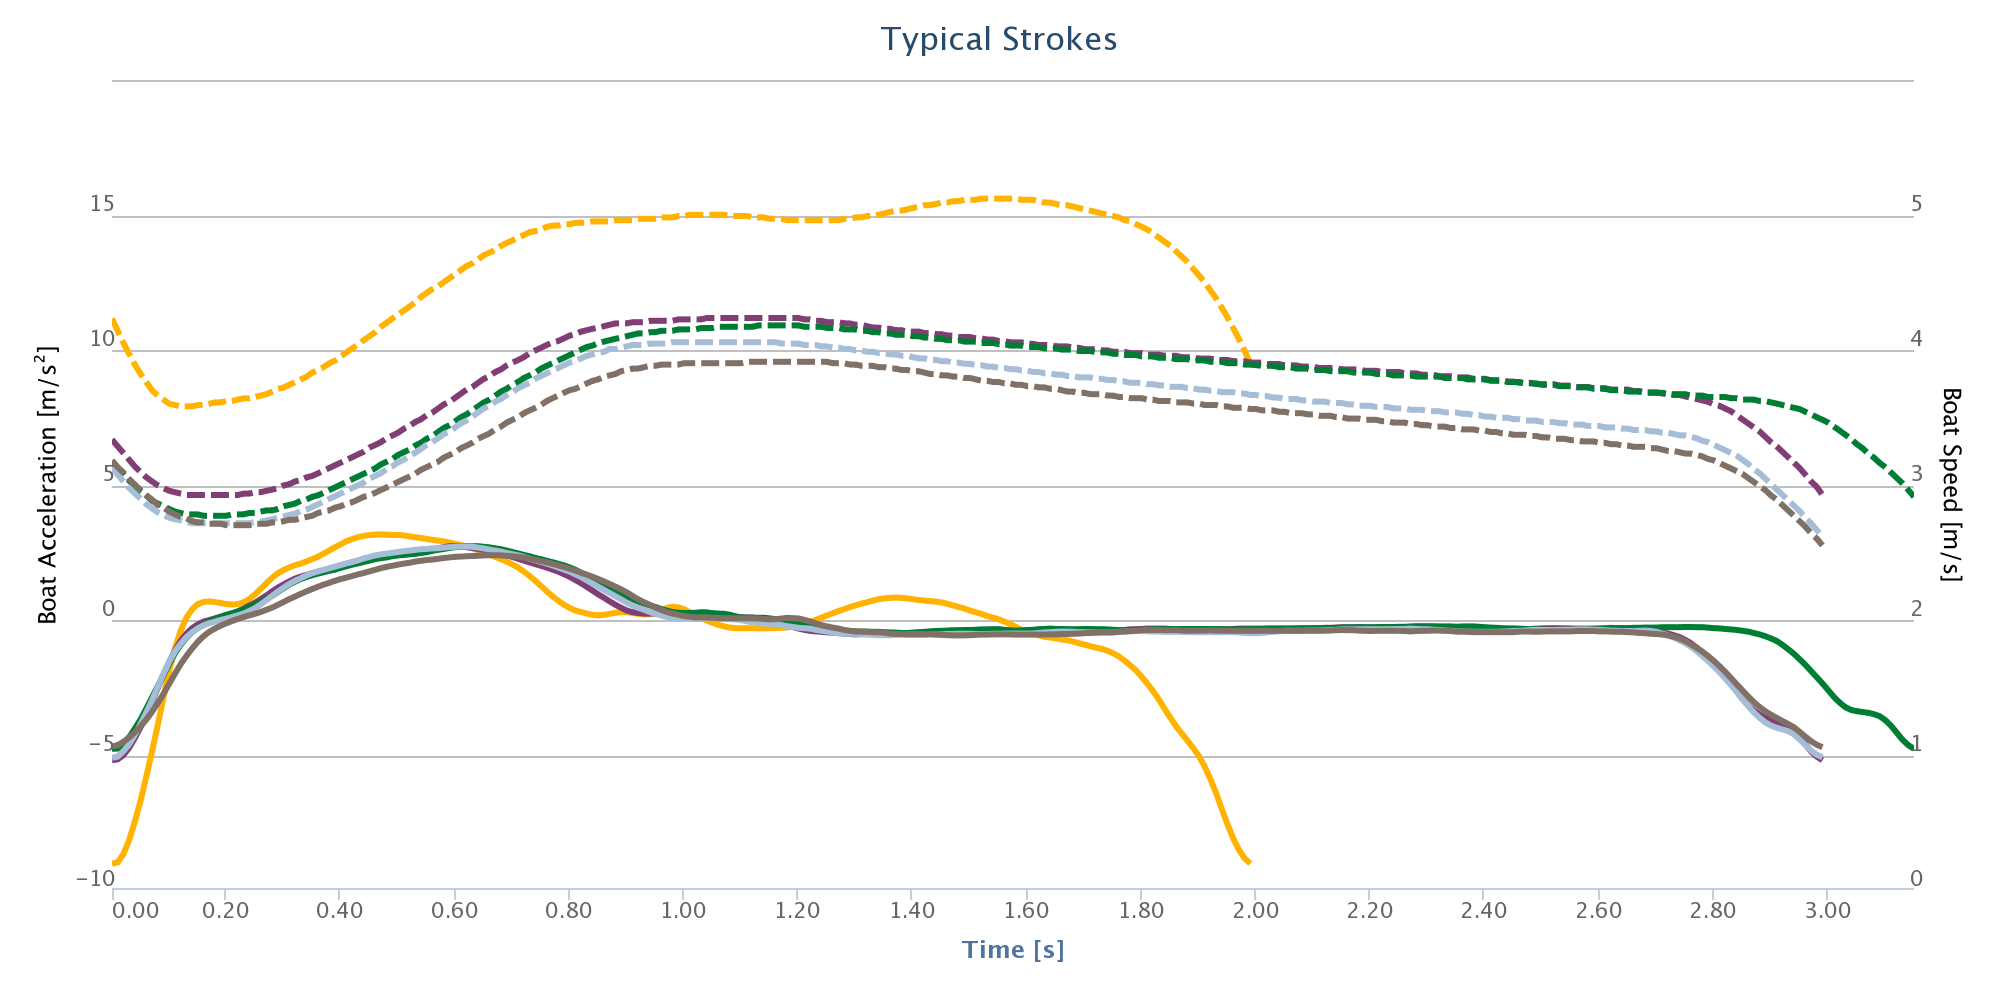 RIM analysis of today's typical strokes